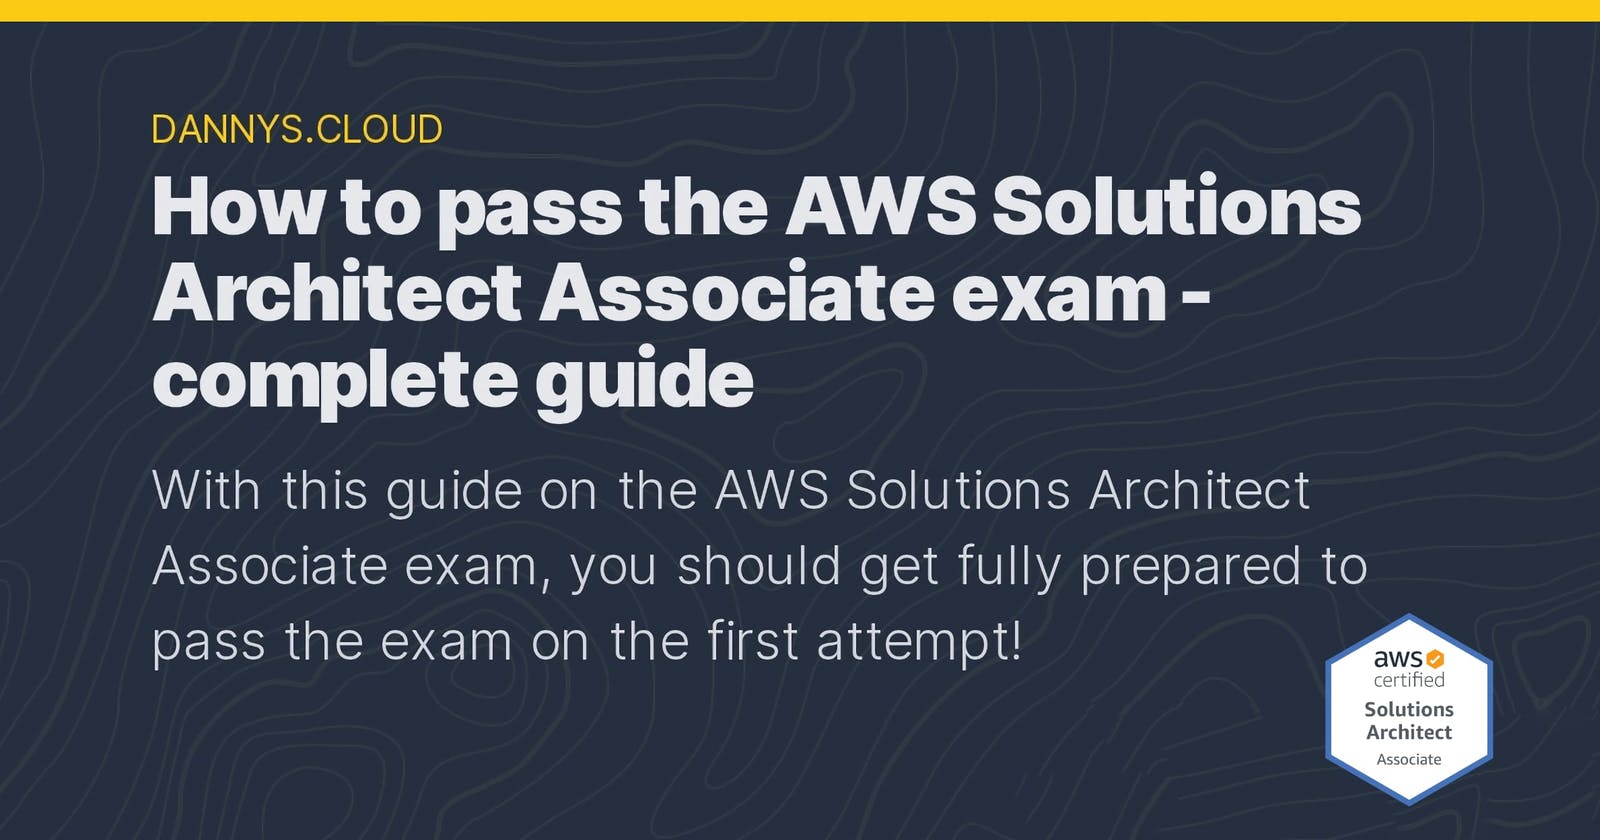 How to pass the AWS Solutions Architect Associate exam - complete guide